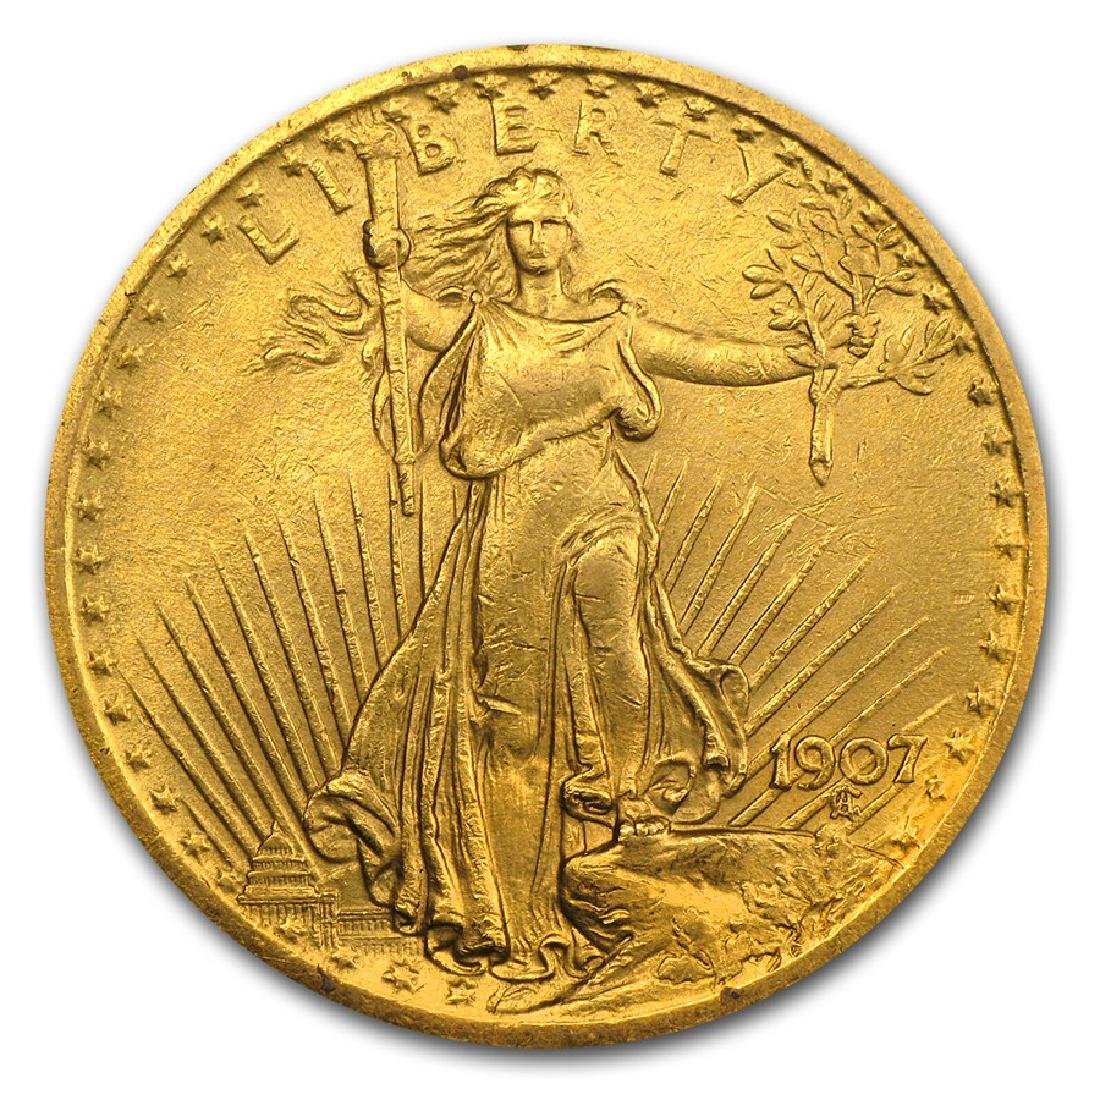 1907 $20 St Gaudens Double Eagle Gold Coin